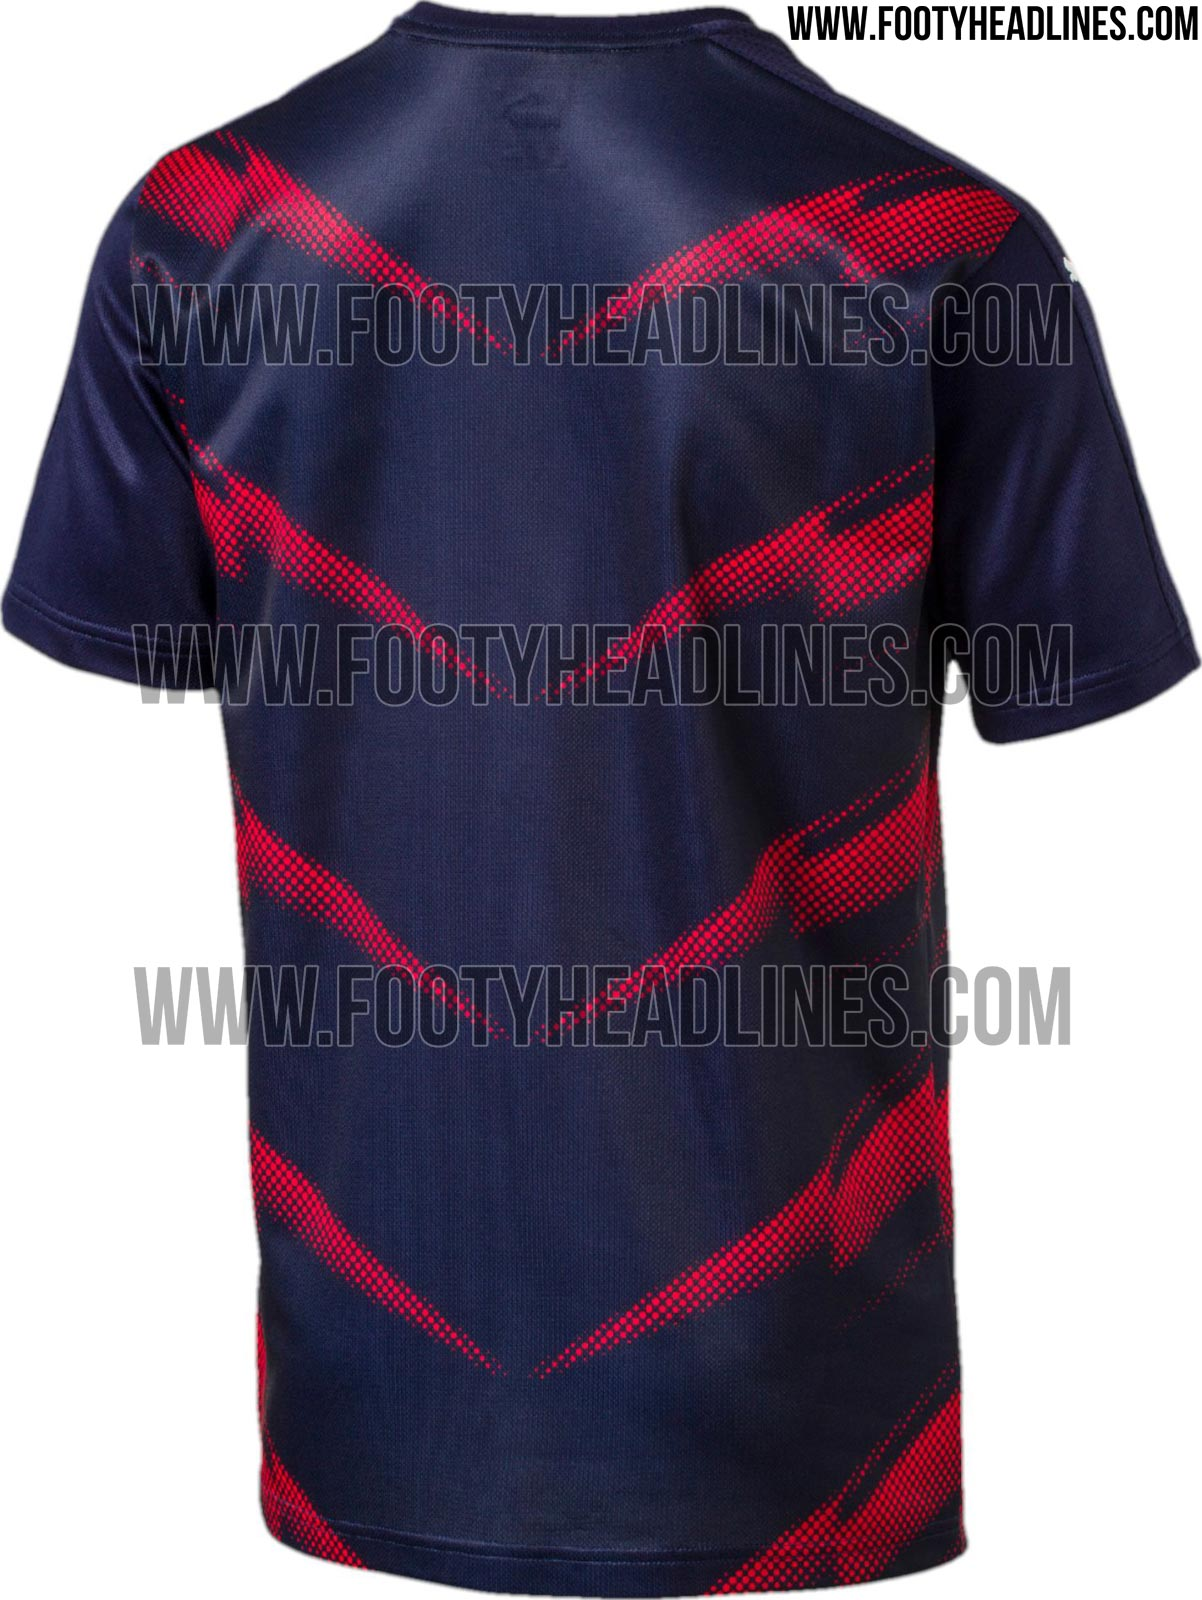 20a963912 arsenal fc jersey 2017 - techinternationalcorp.com